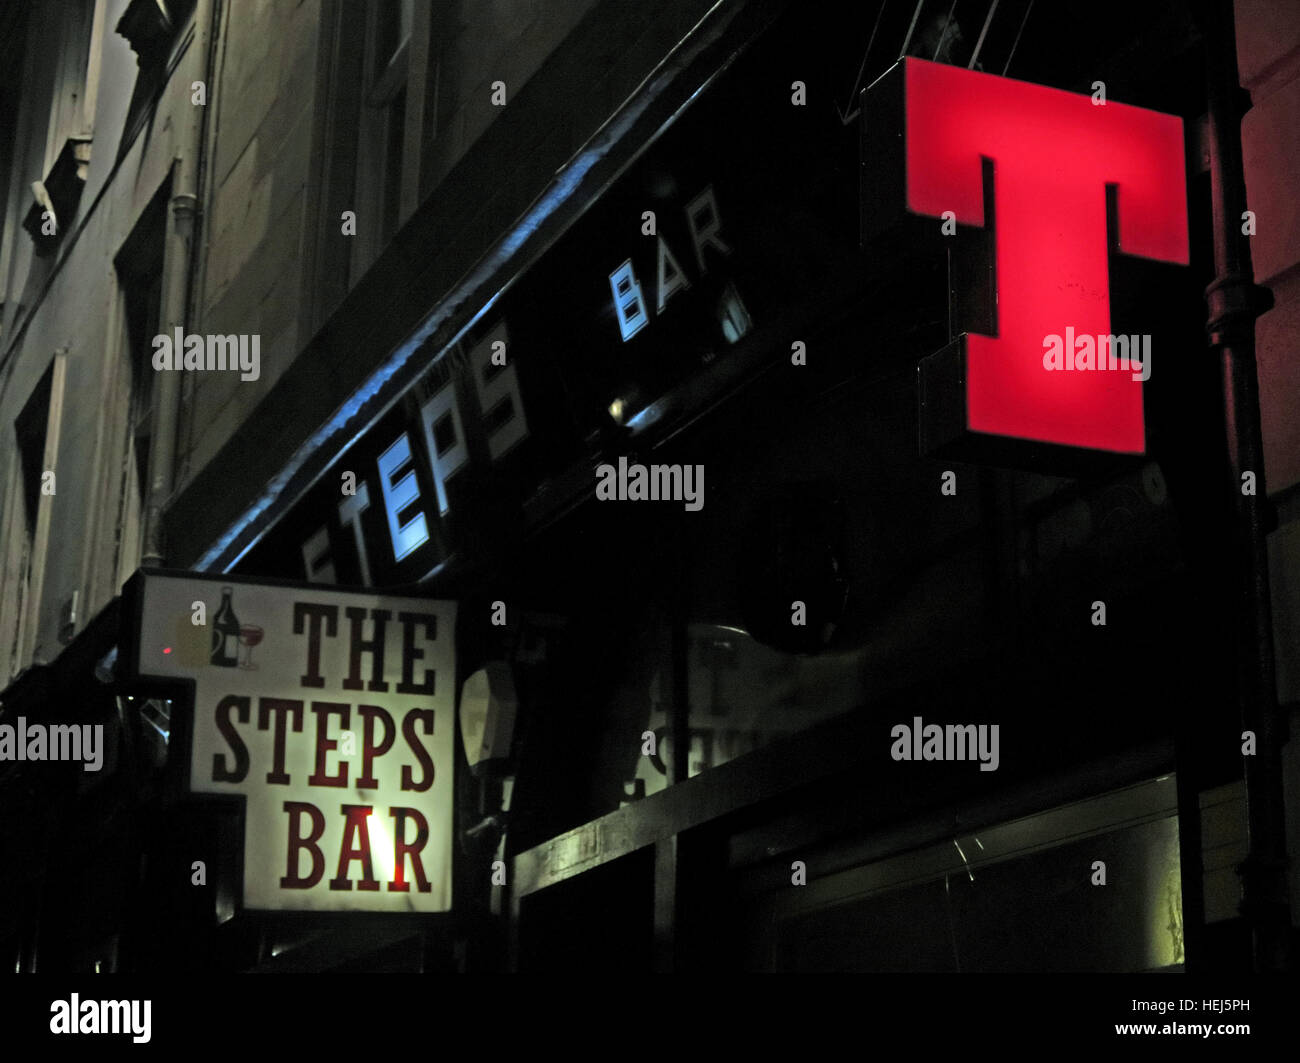 dusk,T,Tennant,Tennant sign,redT,Tennent,Tennents,pub,pubs,bars,dark,dingy,dangerous,Scotland,UK,Glasgow,city,centre,city centre,G1,Glassford,St,red T,The Steps Bar,Steps Bar,GoTonySmith,@HotpixUK,Tony,Smith,UK,GB,Great,Britain,United,Kingdom,Scots,Scottish,British,Scotland,Glasgow,Greater,problem,with,problem with,issue with,City,Centre,cities,Urban,Urbanist,town,infrastructure,transport,tour,tourism,tourists,urban,attraction,attractions,Buy Pictures of,Buy Images Of,Images of,Stock Images,Tony Smith,United Kingdom,Great Britain,Greater Glasgow,British Isles,Glasgow City Centre,City Centre